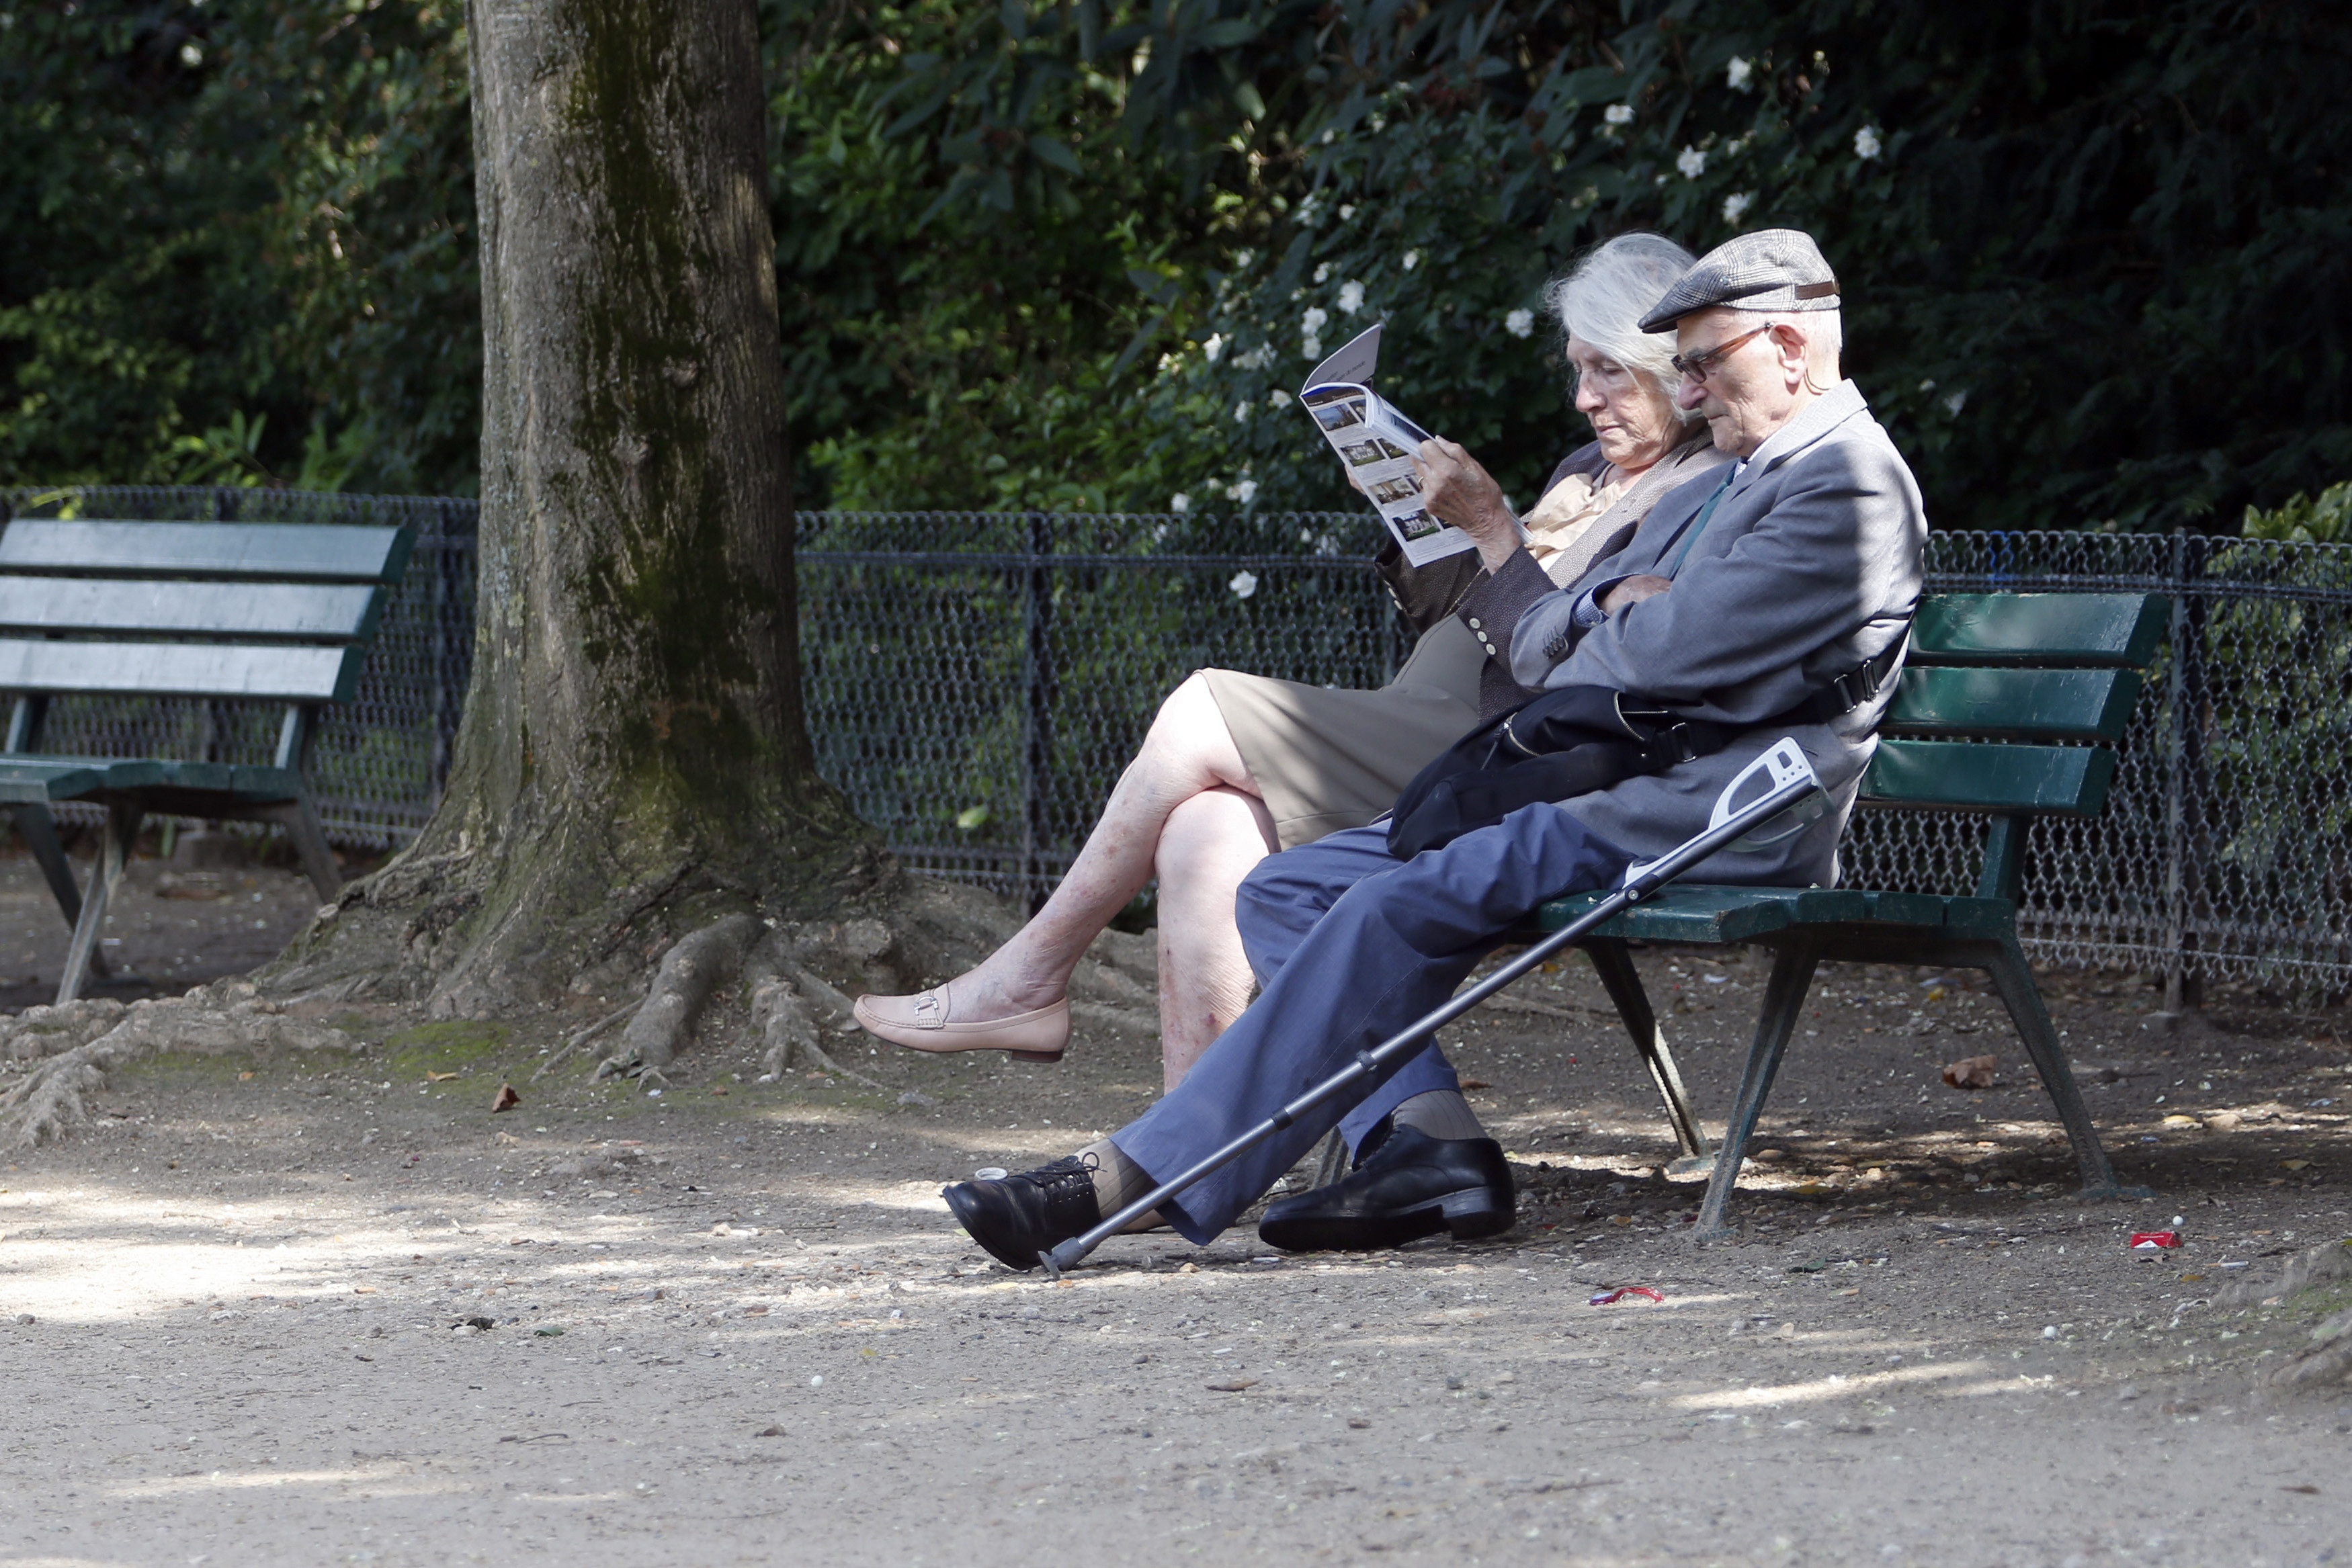 A retired elderly couple take advantage of the late summer weather in the gardens at the Champs de Mars in Paris, August 26, 2013.  France's government, which has been meeting with labour union heads about retirement issues, neared a deal with trade unions on Monday to overhaul the pension system via a slight lengthening of working lives, union chiefs said, as Europe's number two economy sought to bring a spiralling deficit under control.  REUTERS/Charles Platiau   (FRANCE - Tags: SOCIETY POLITICS BUSINESS EMPLOYMENT) - PM1E98Q1CHJ01